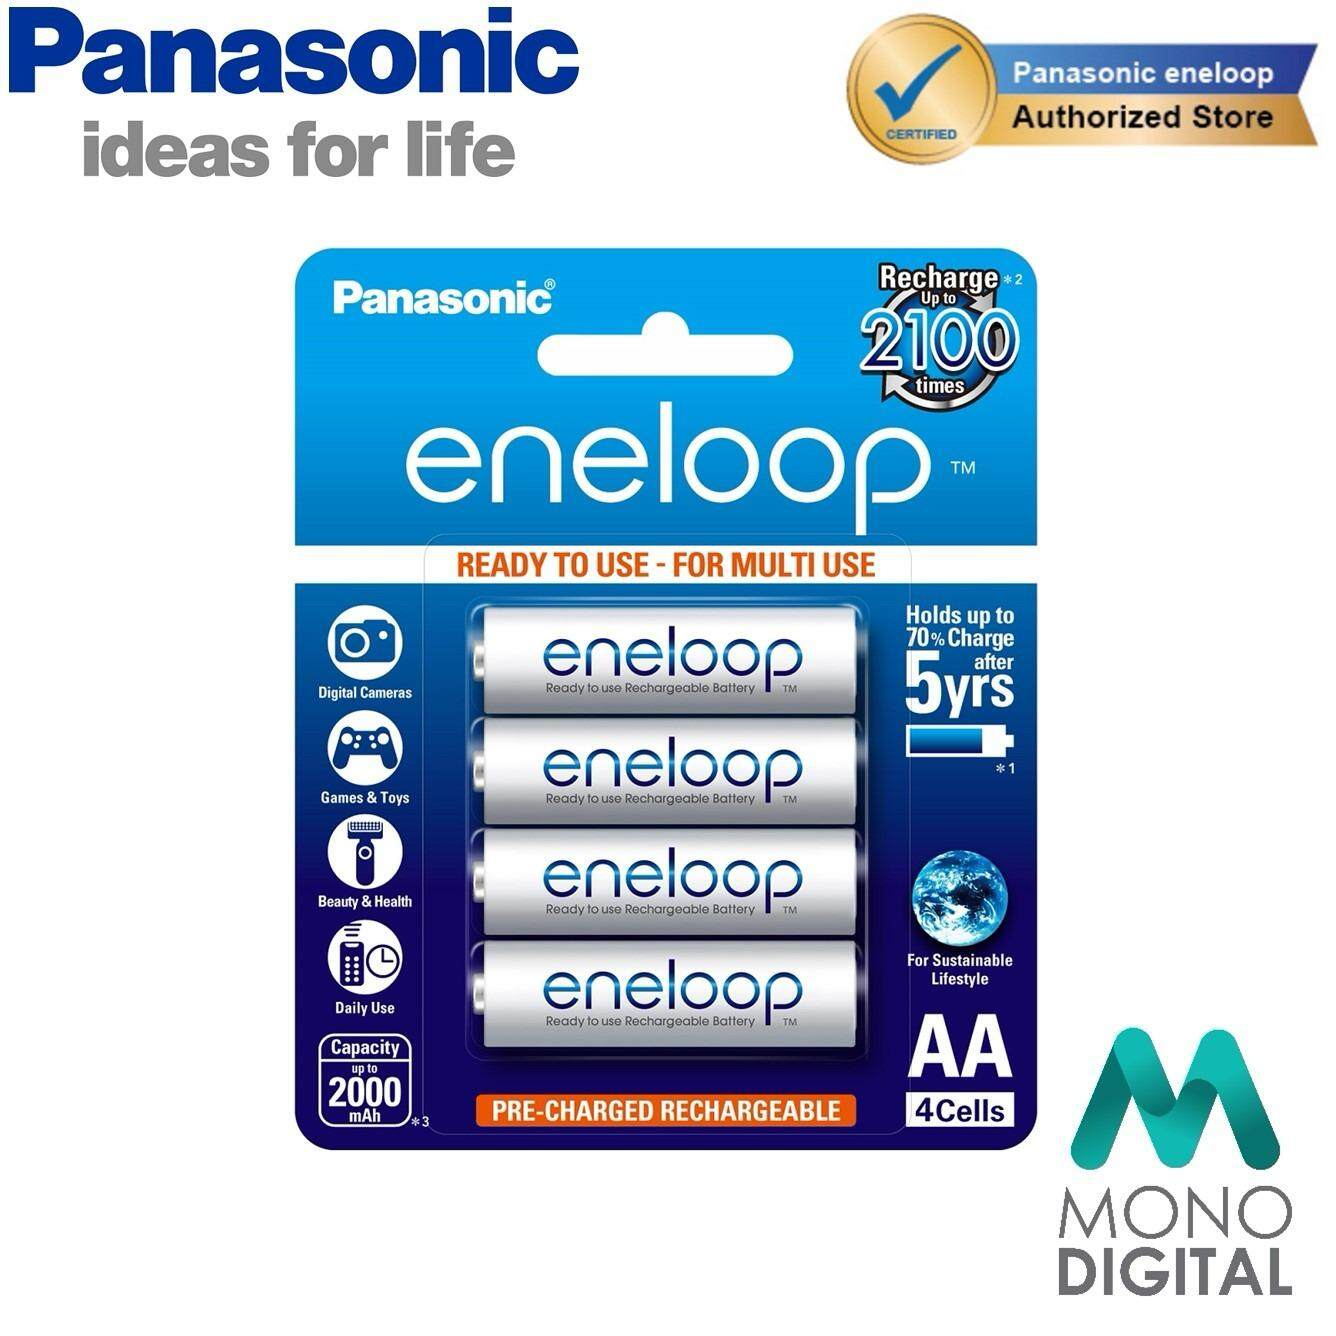 PANASONIC Eneloop AA Battery 4 x 2000mAh Rechargeable Battery (ORIGINAL) Malaysia